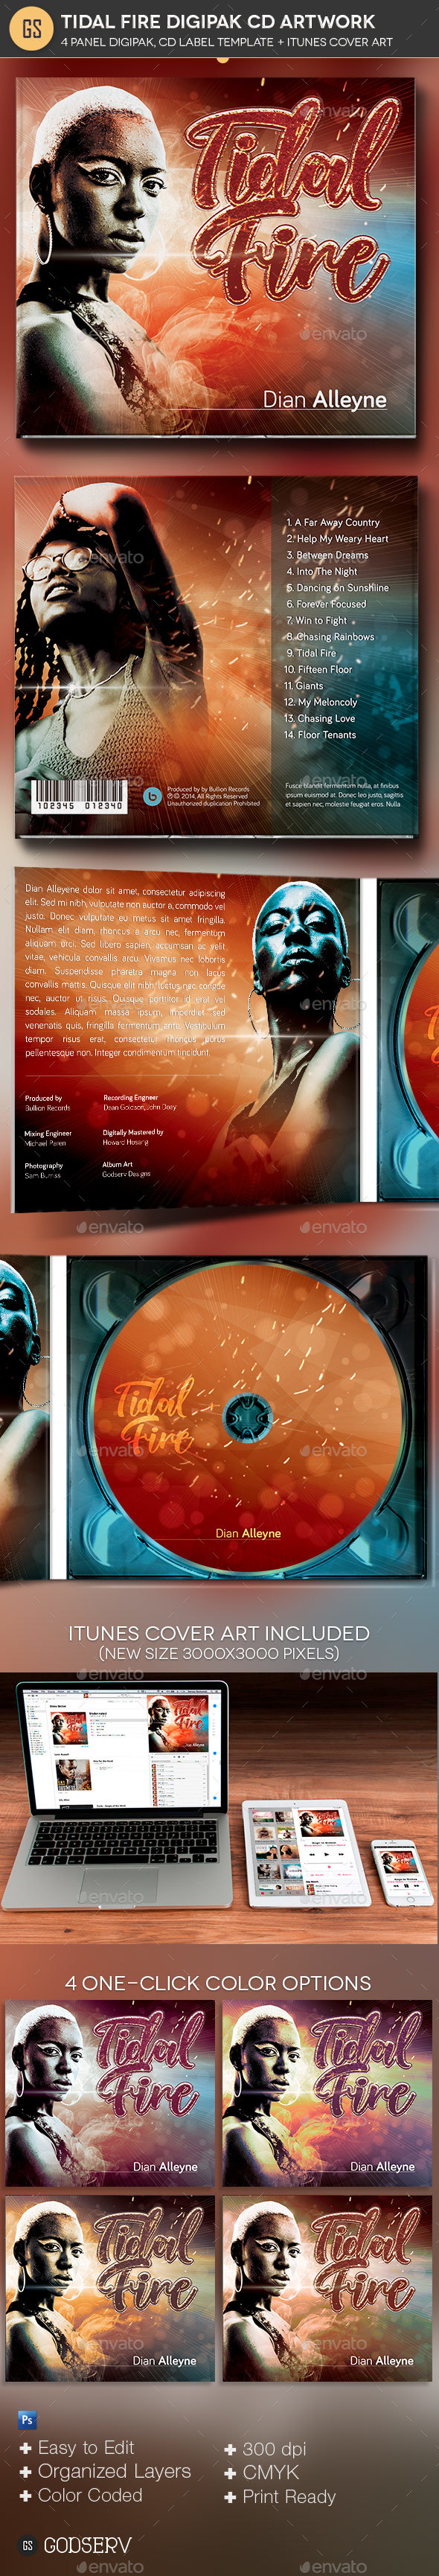 GraphicRiver Tidal Fire 4 Panel Digipak CD Artwork Template 20949944